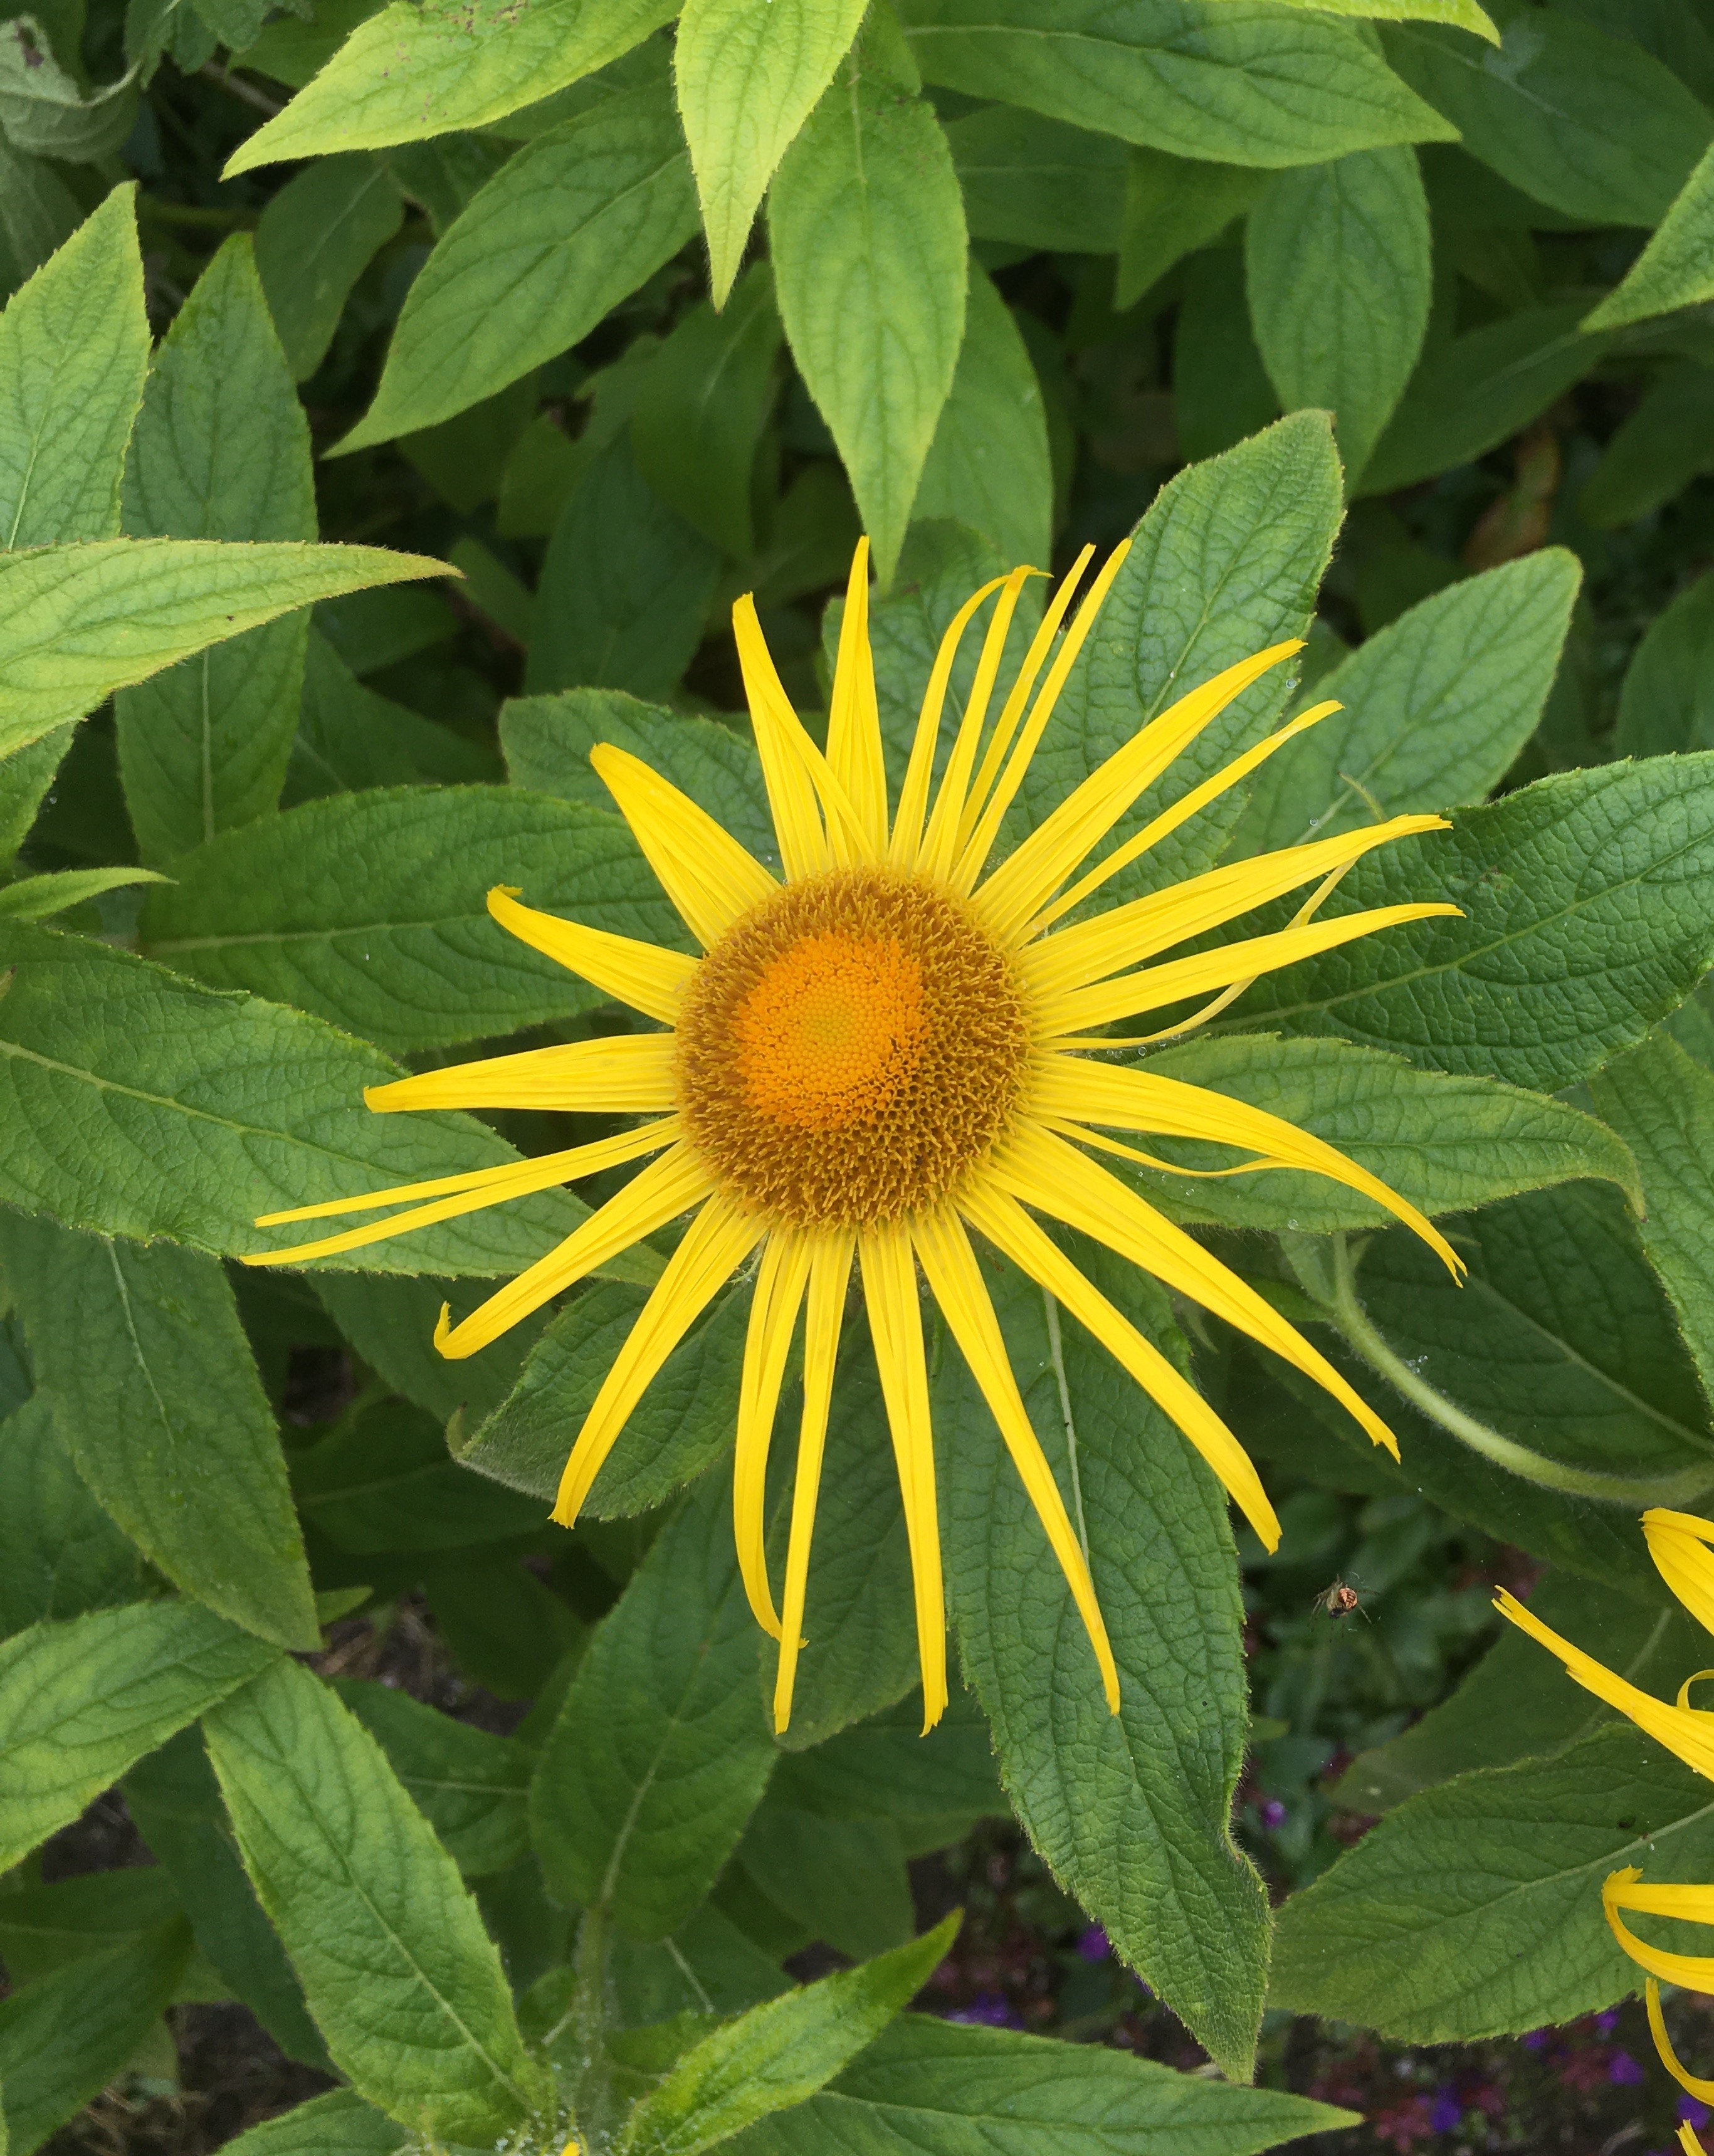 A yellow flower, symbolizing 'living according to nature' which is the goal of epicureanism.